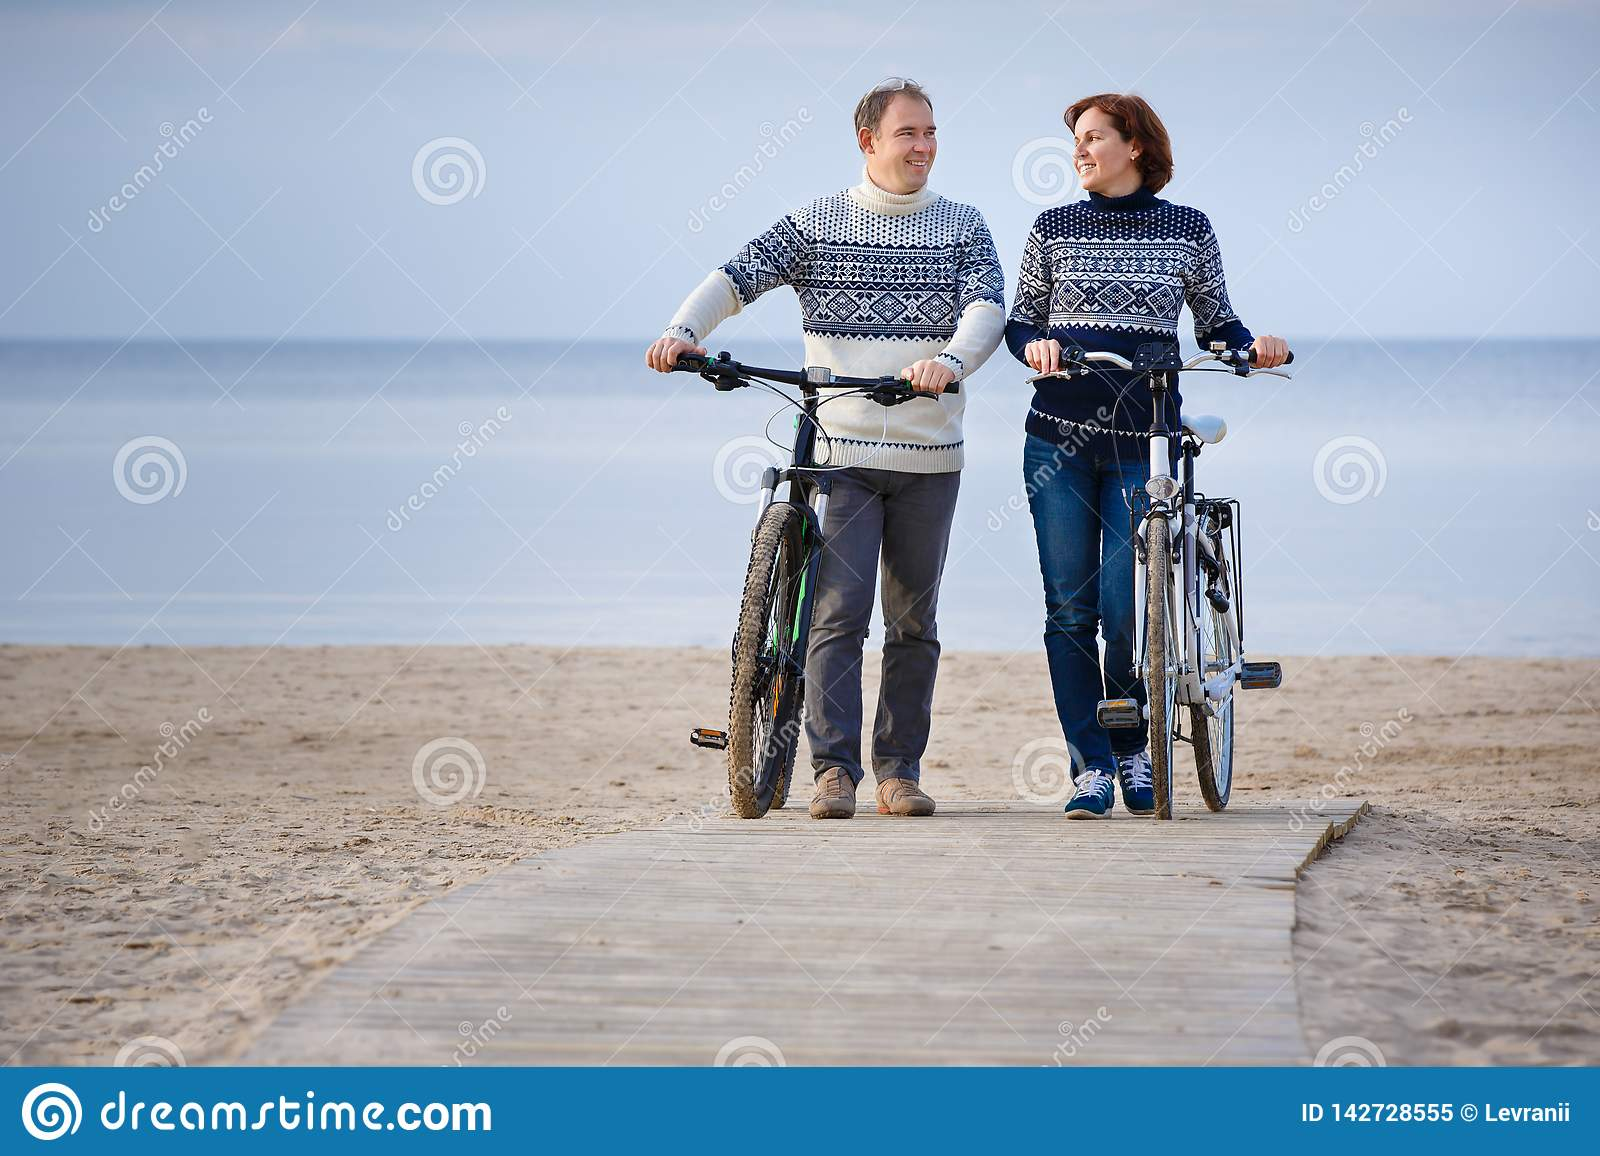 Cheerful young couple biking on beach outdoors. Cheerful young couple biking on beach on a sunny day royalty free stock photo